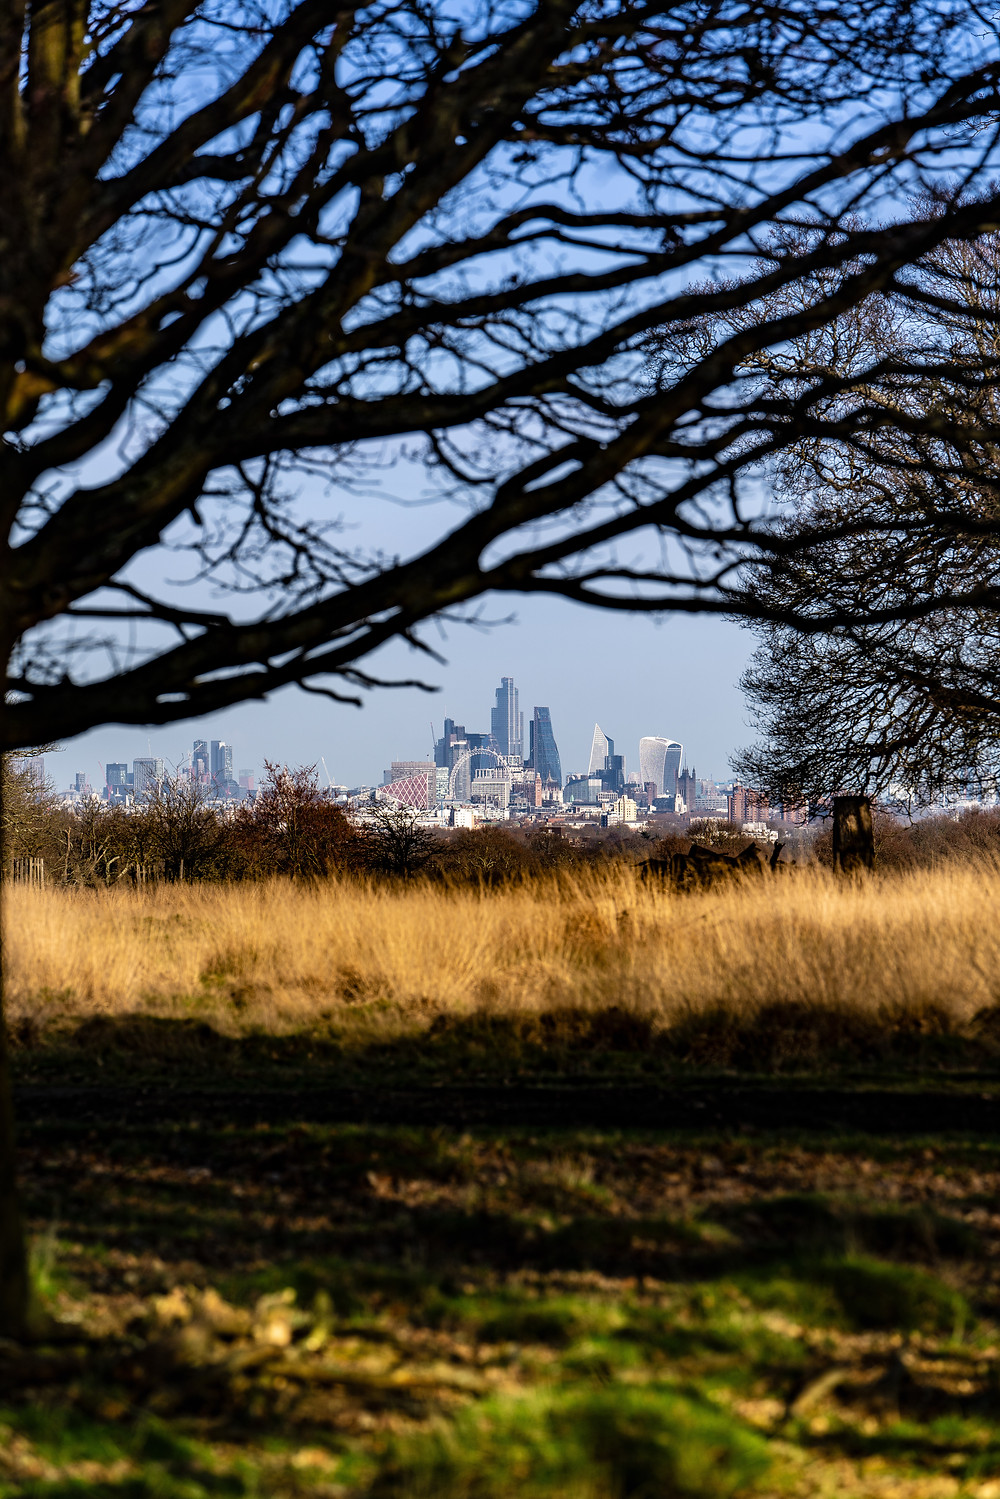 Looking towards the City from King Henry's Mound